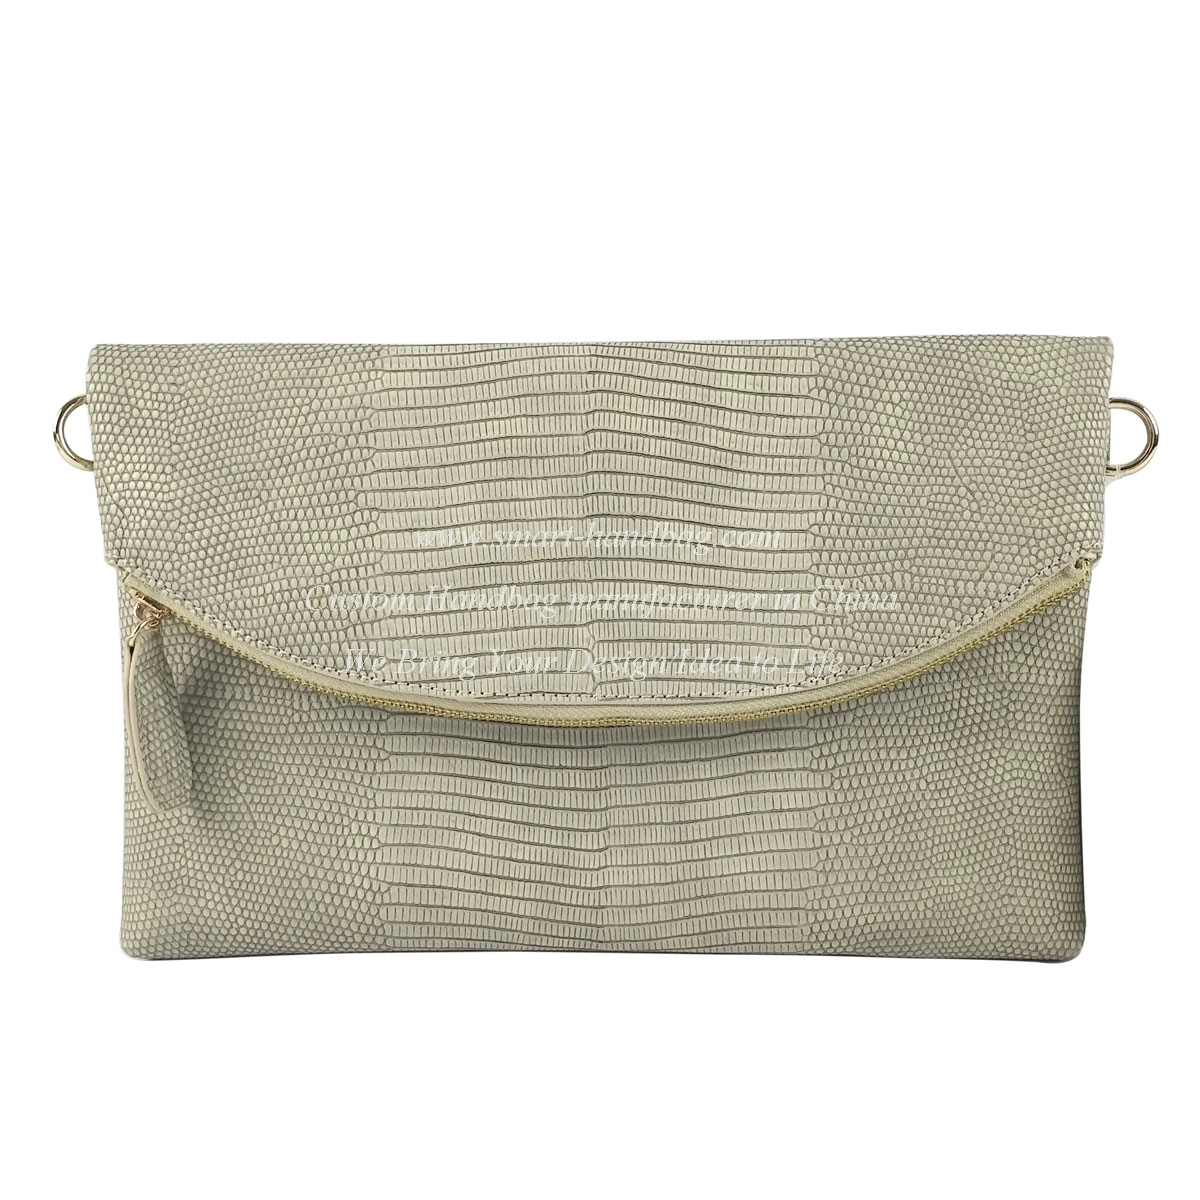 Fold-over Crossbody Clutch Bag